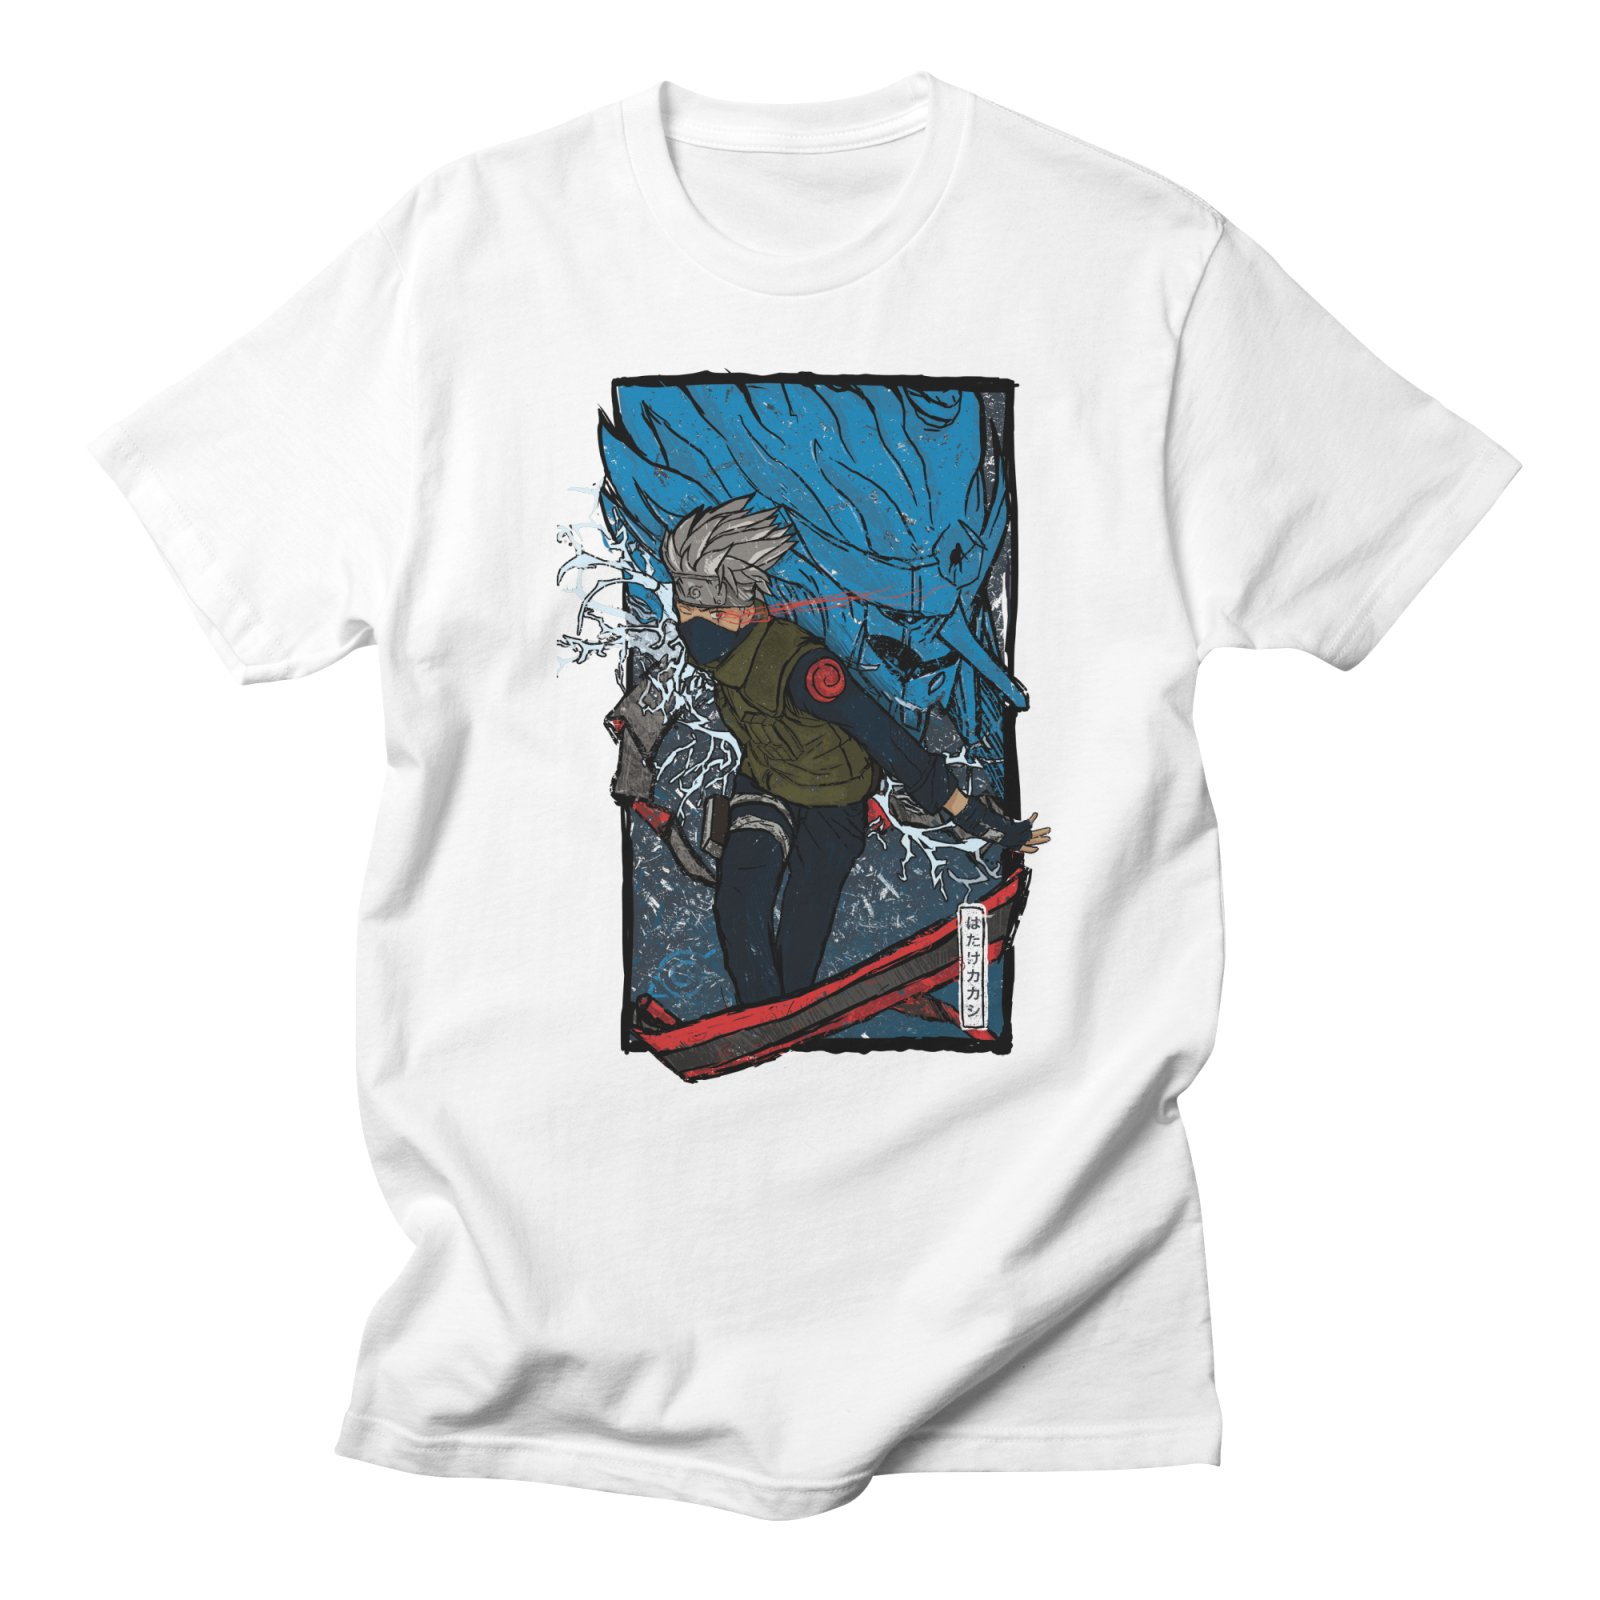 Naruto Hatake Kakashi T Shirt Men Funny Casual Fashion High Quality Streetwear Tops Summer Cool Style White T Shirt Men Cotton